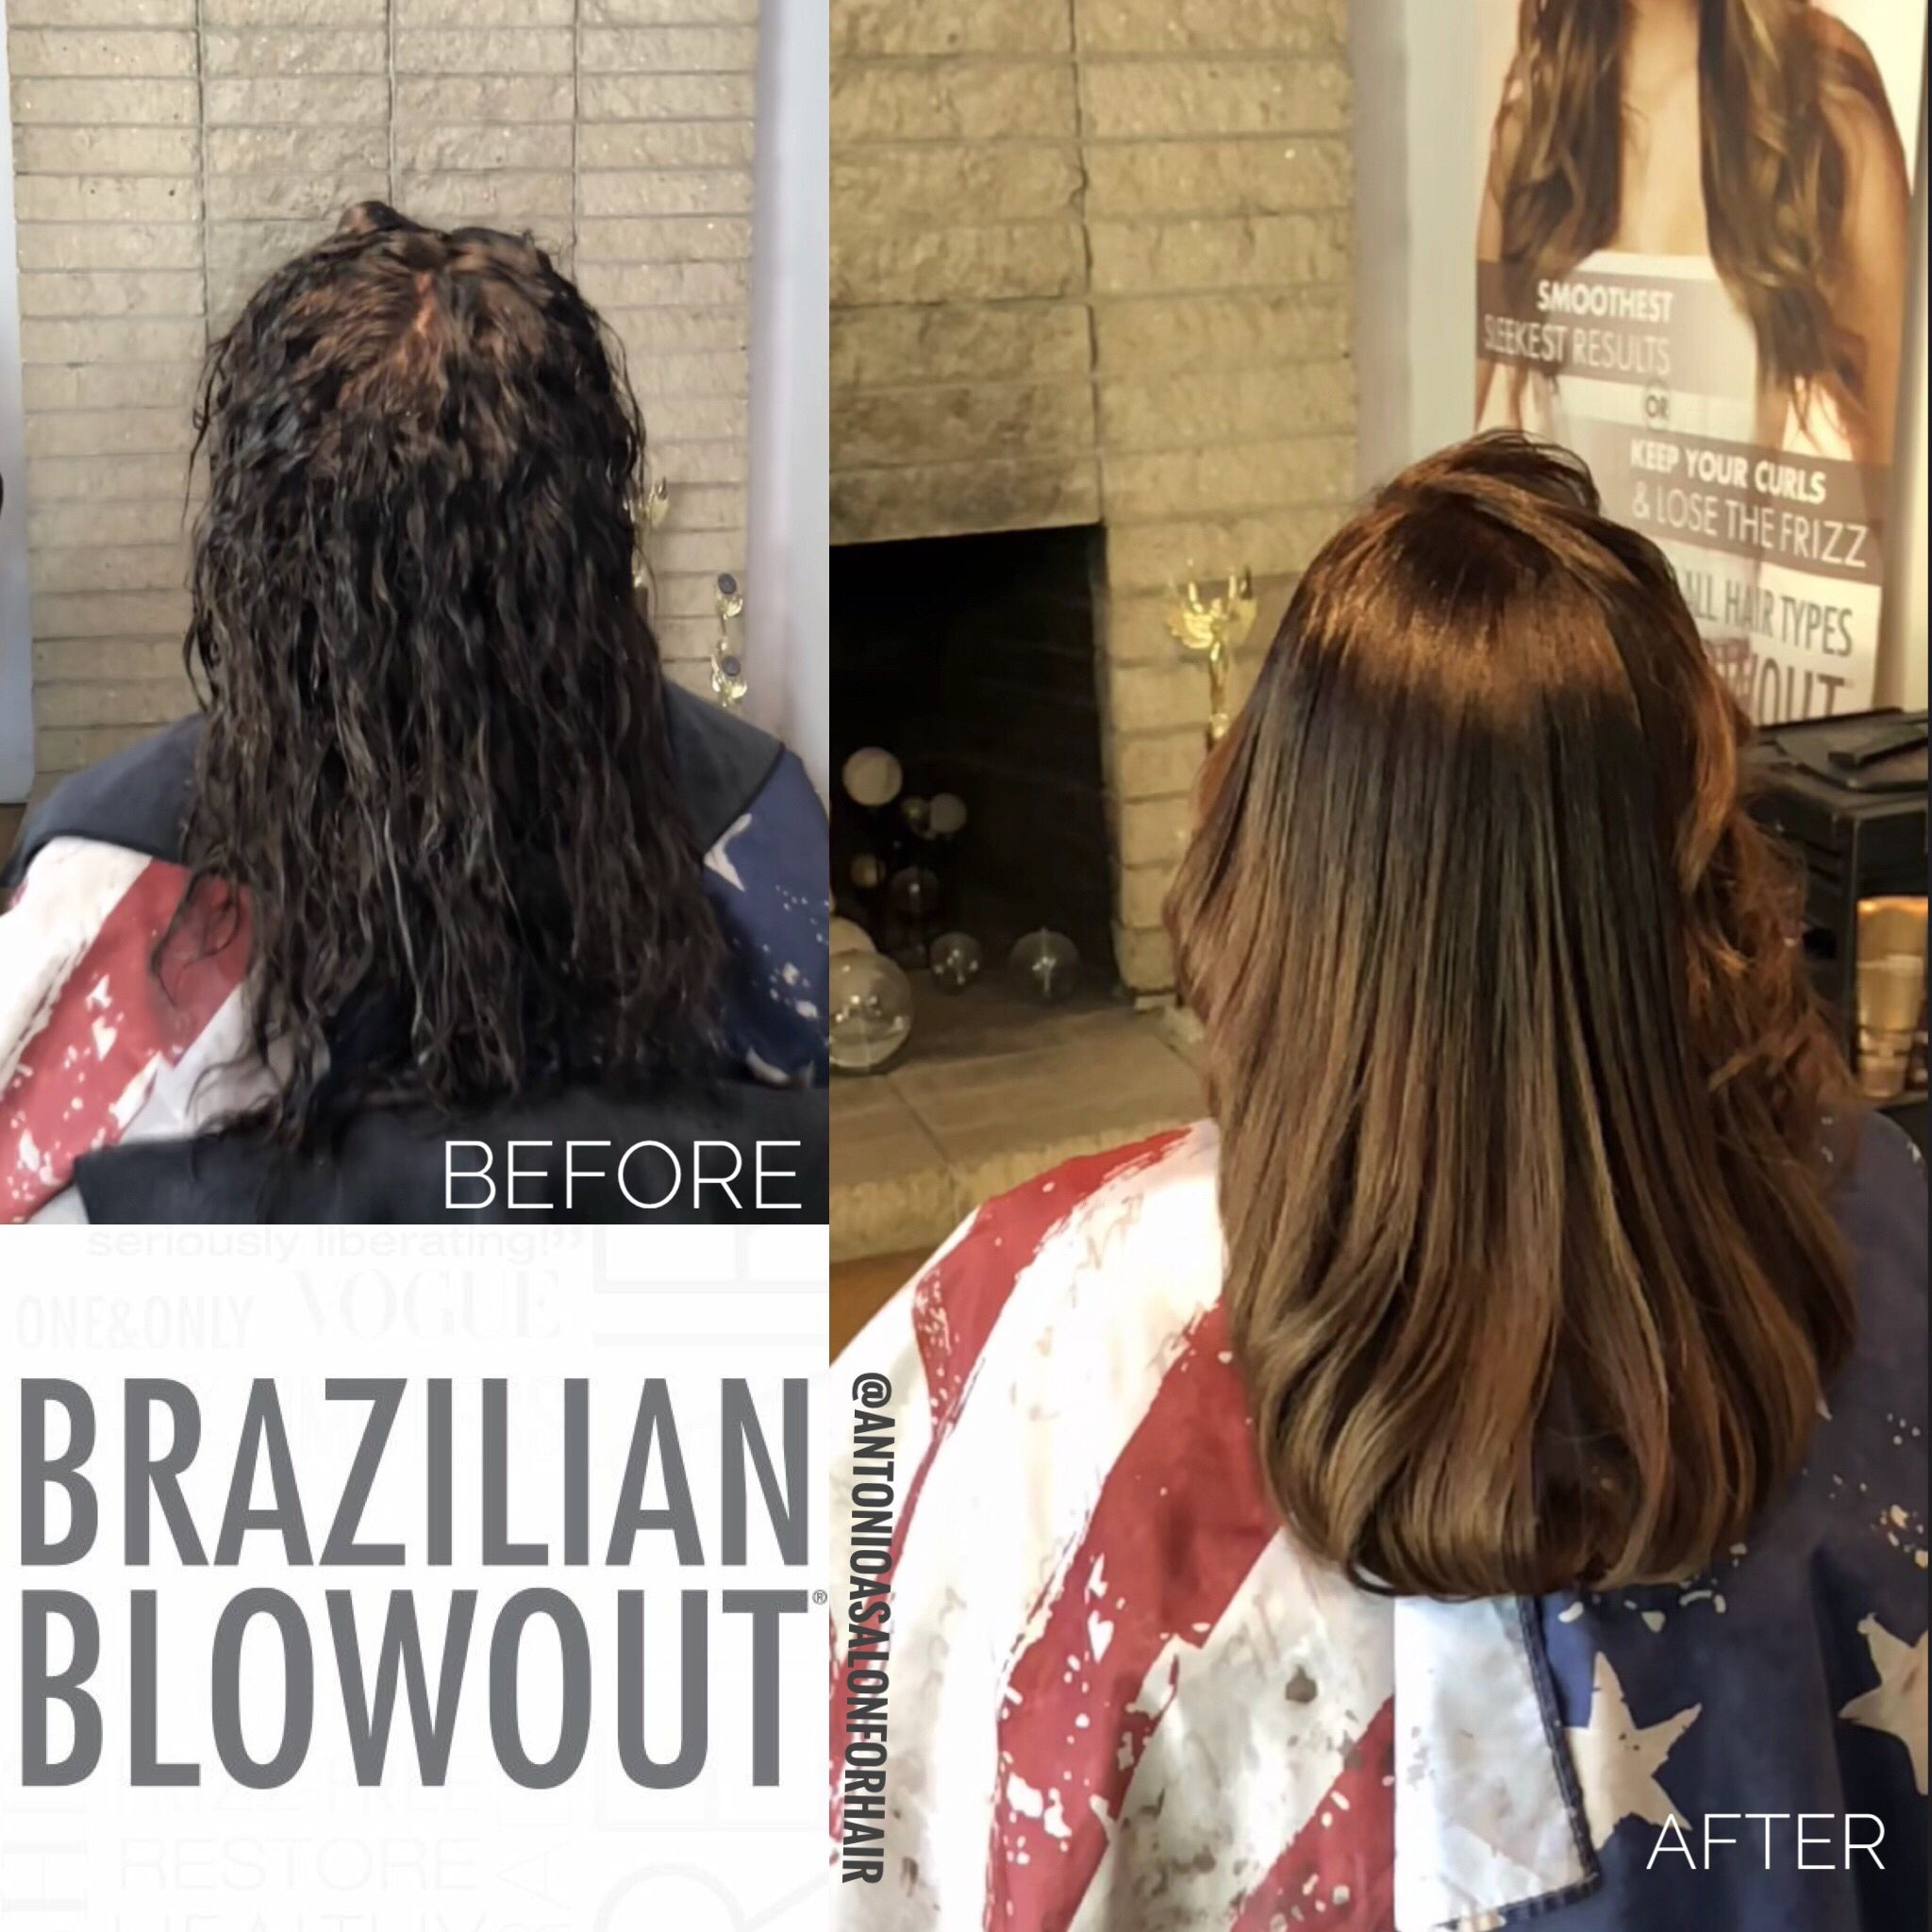 Brazilian blowout before and after antonio a salon for hair